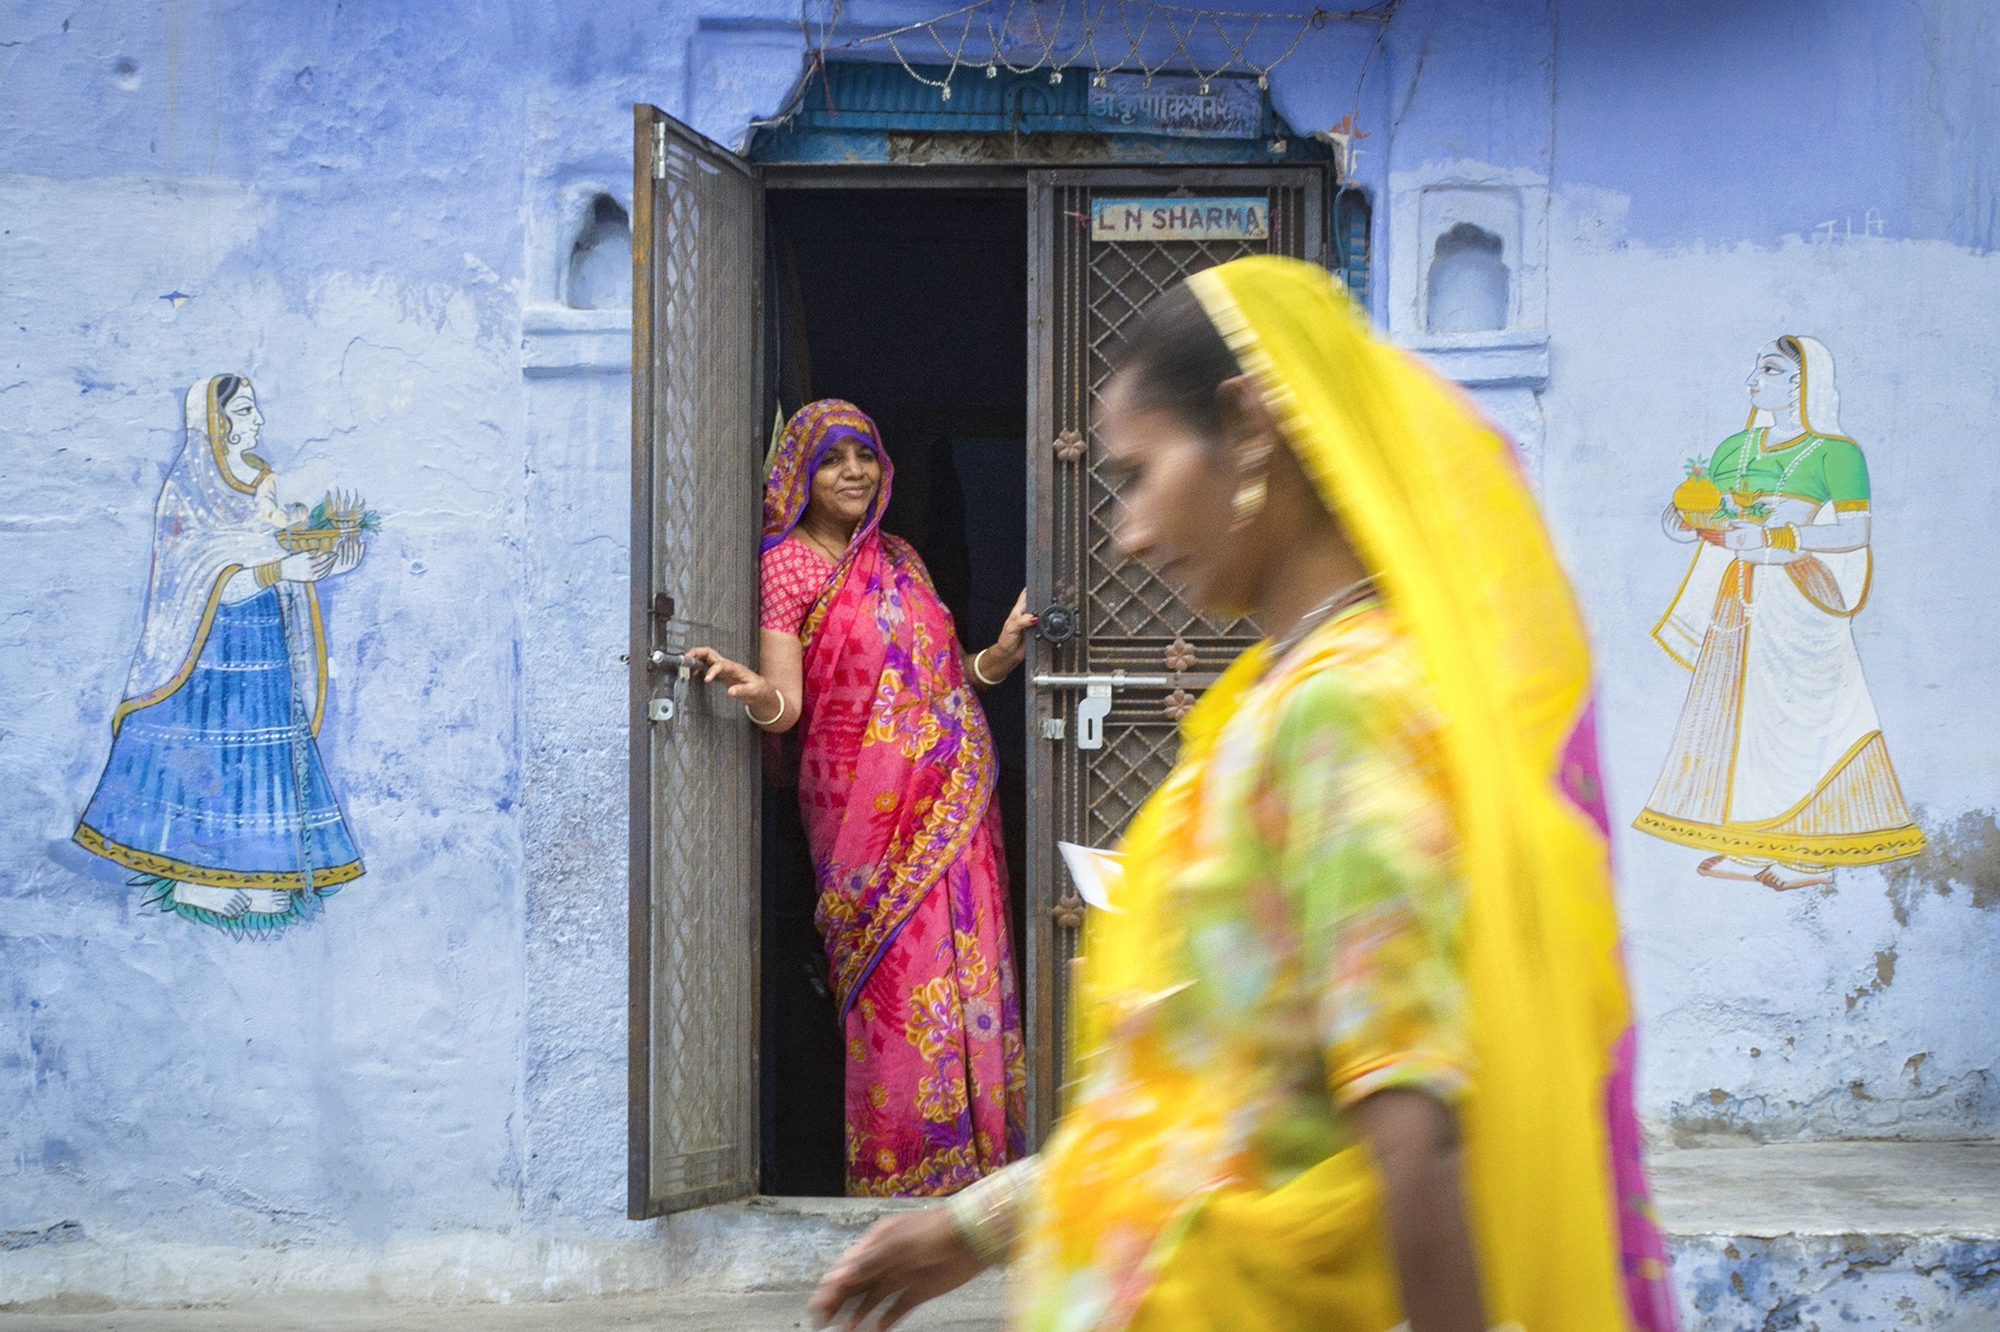 We were on Photowalk around the most famous blue houses of Blue City ,Jodhpur. Saw this house with beautiful art work . I sat in front of her house & clicked couple of shots of the whole lane. In the last decided to take some shots of her. She gently smiled & all of sudden a lady in yellow attire came into the frame. This frame gives us the feel of feminism with joy , pride & also shows the fast life